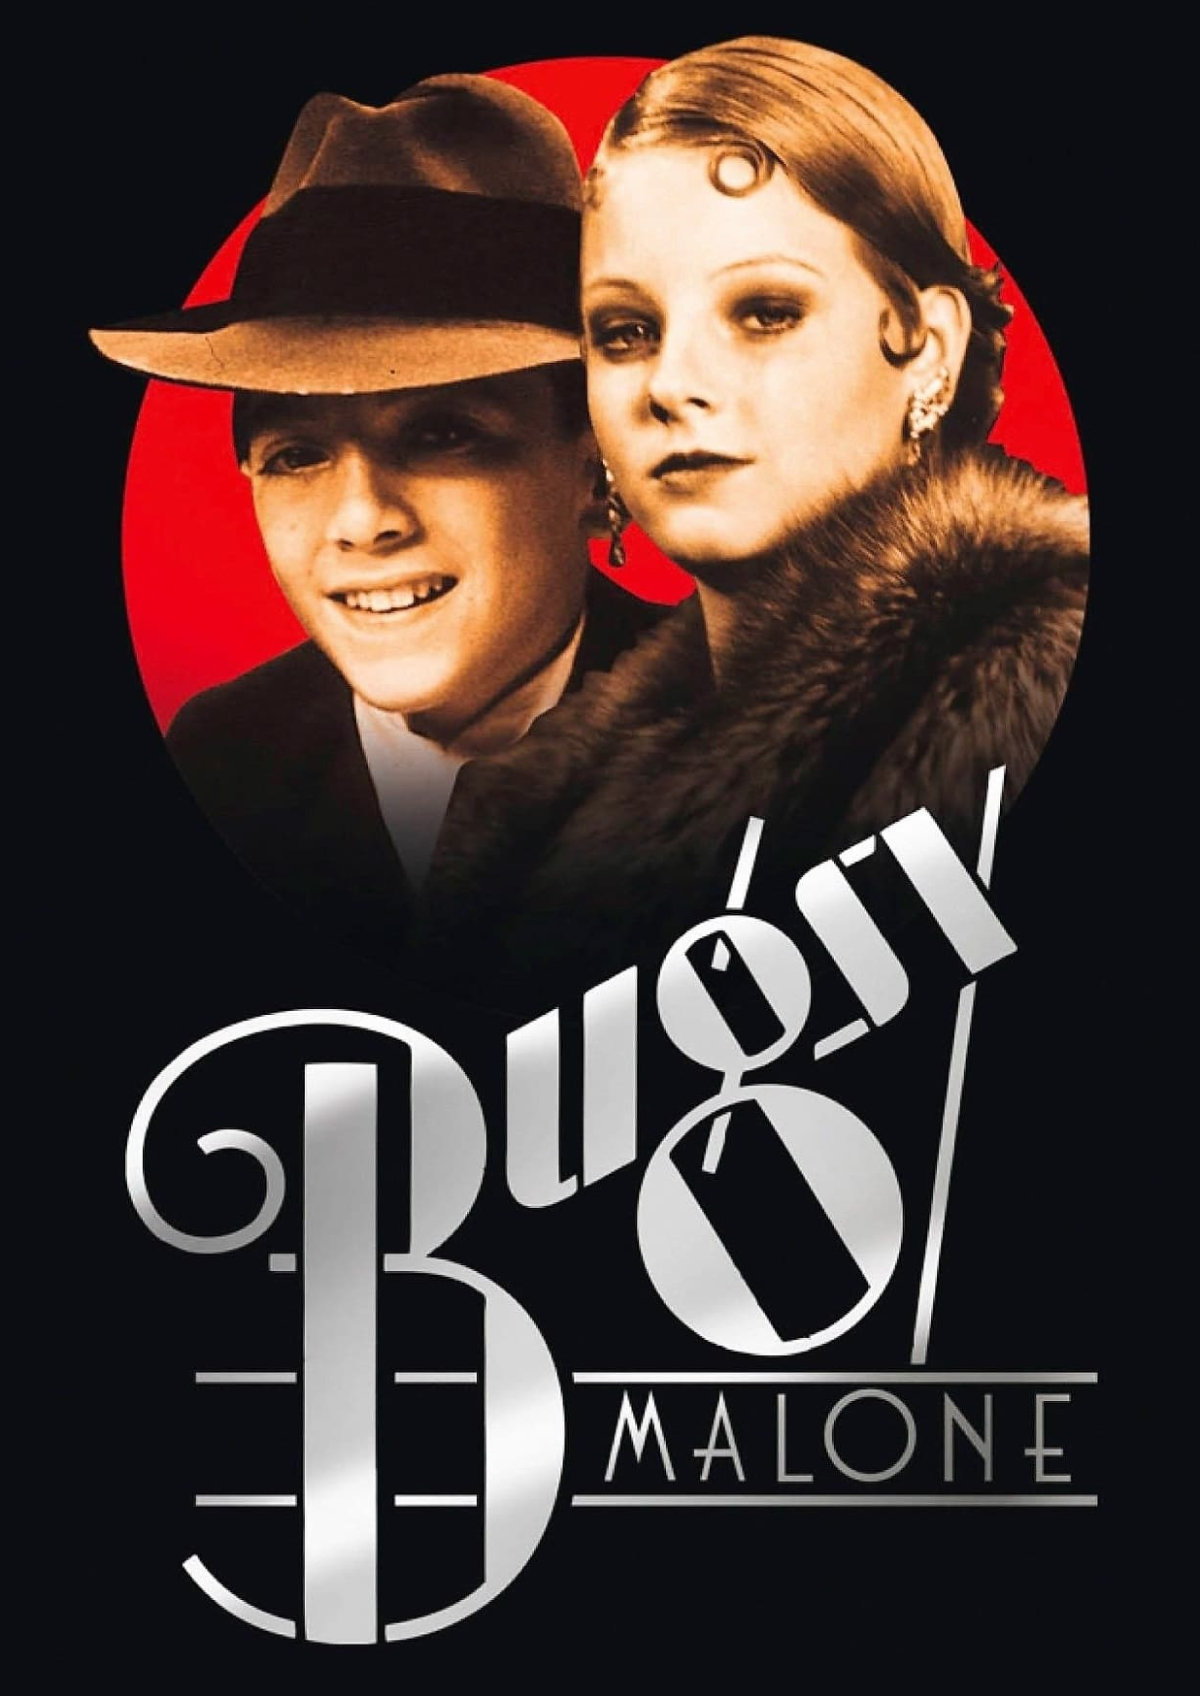 'Bugsy Malone' movie poster